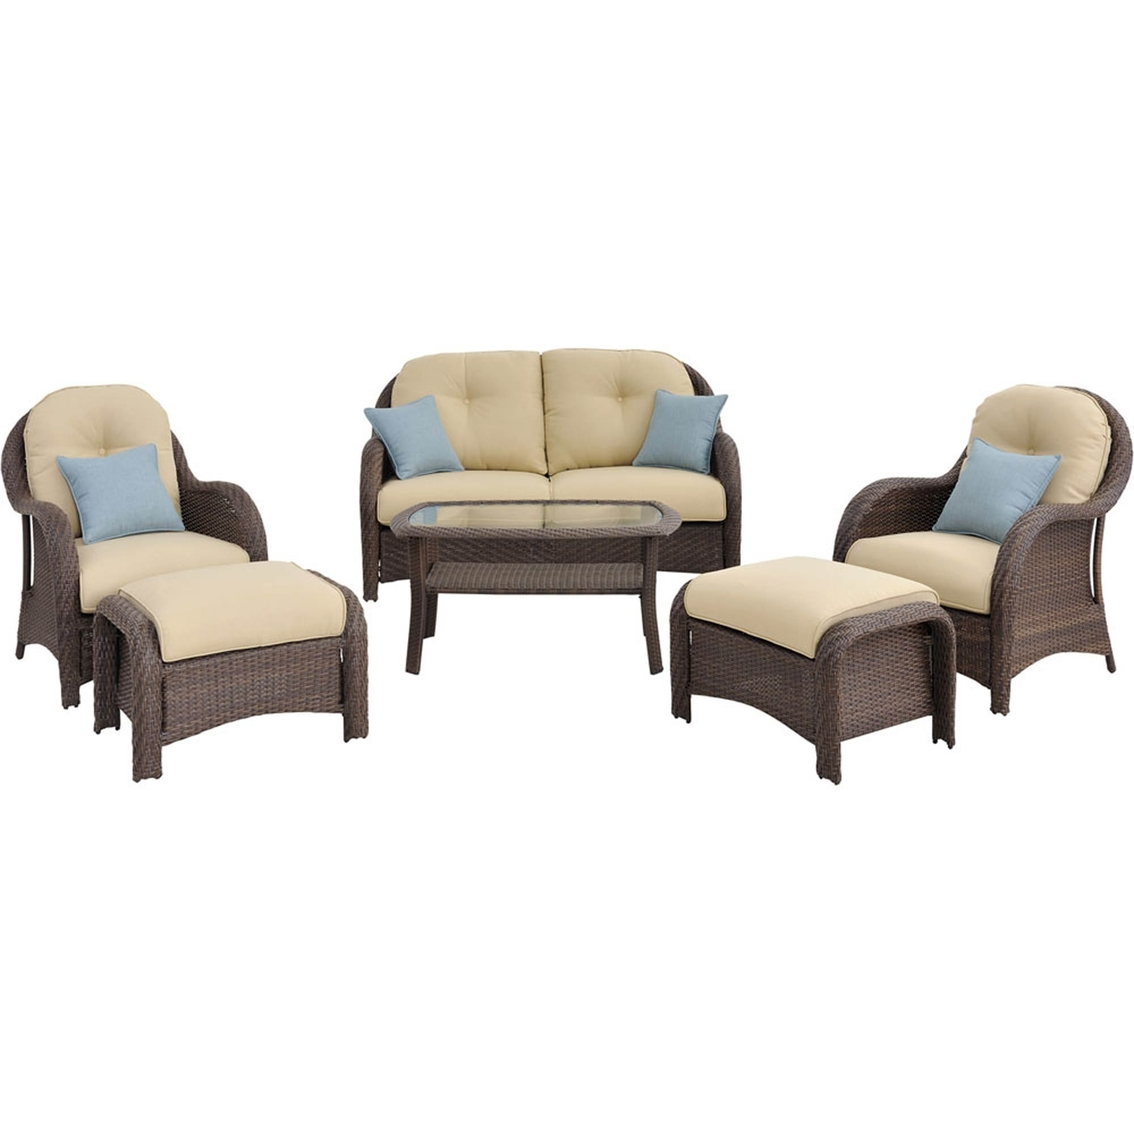 Hanover Outdoor Furniture Newport Wicker 6 Pc. Deep Seating Patio Set